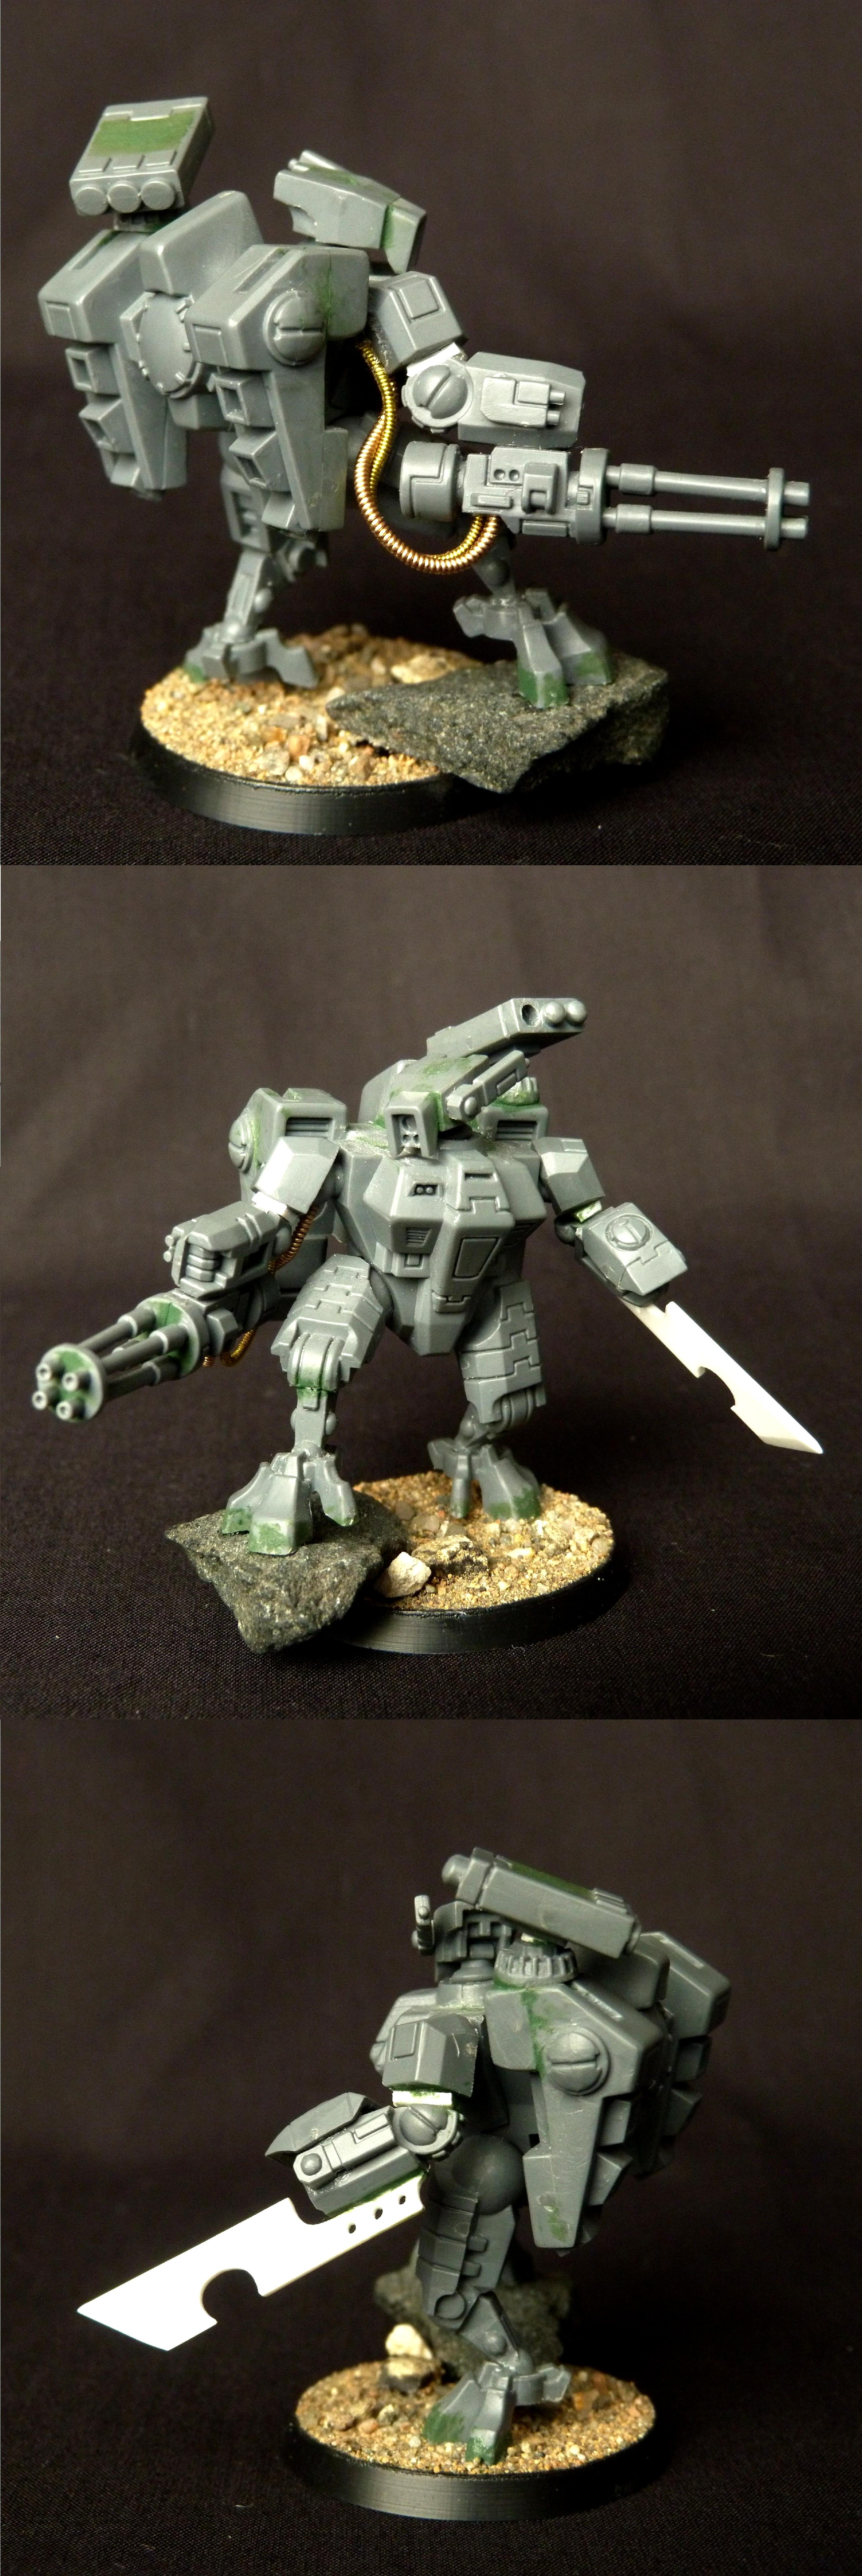 Battlesuit, Conversion, Crisis Battlesuit, Tau, Warhammer 40,000, Work In Progress, XV8